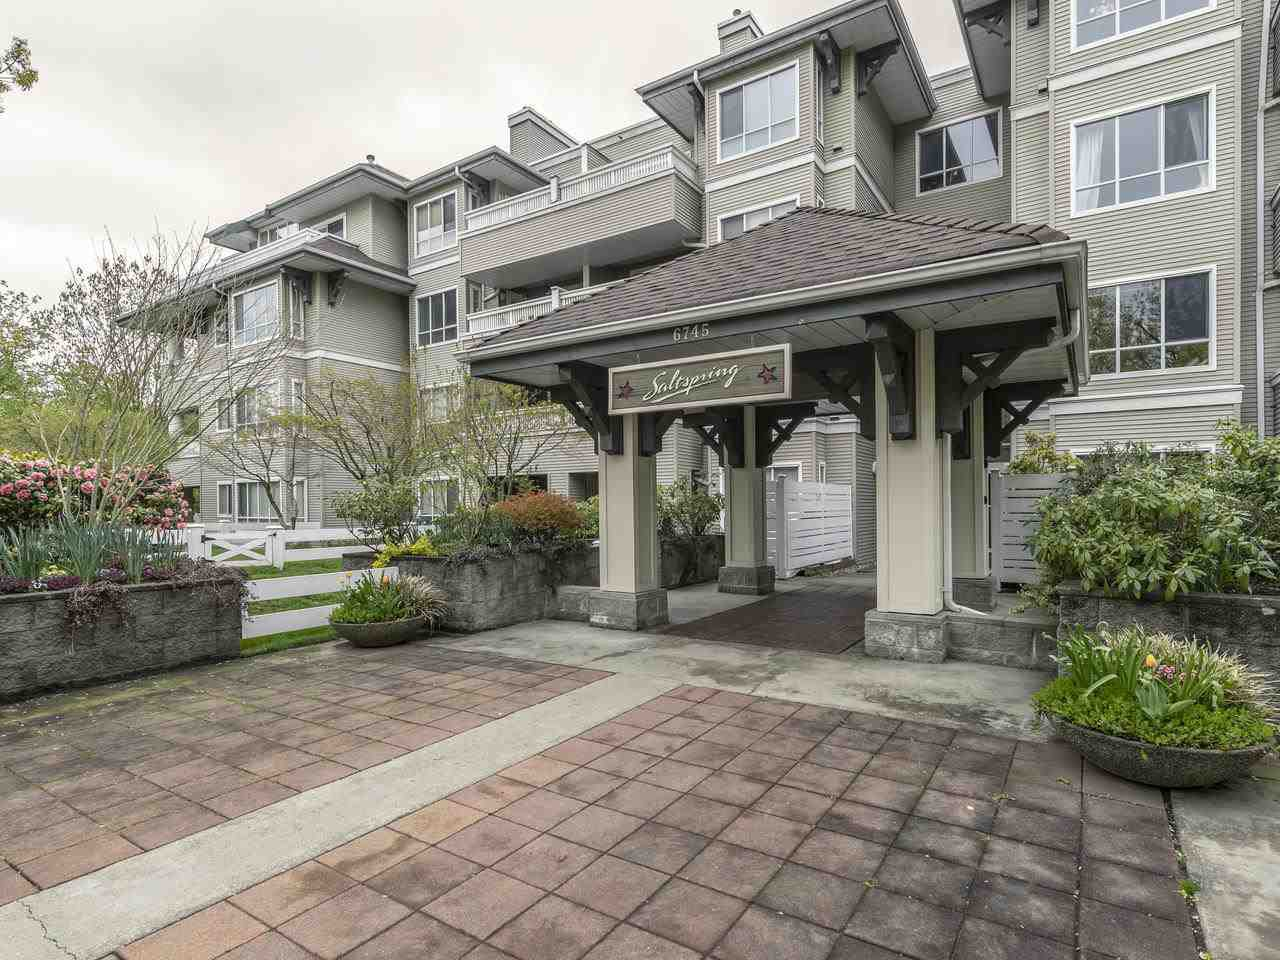 """Main Photo: 404 6745 STATION HILL Court in Burnaby: South Slope Condo for sale in """"THE SALTSPRING"""" (Burnaby South)  : MLS®# R2445660"""